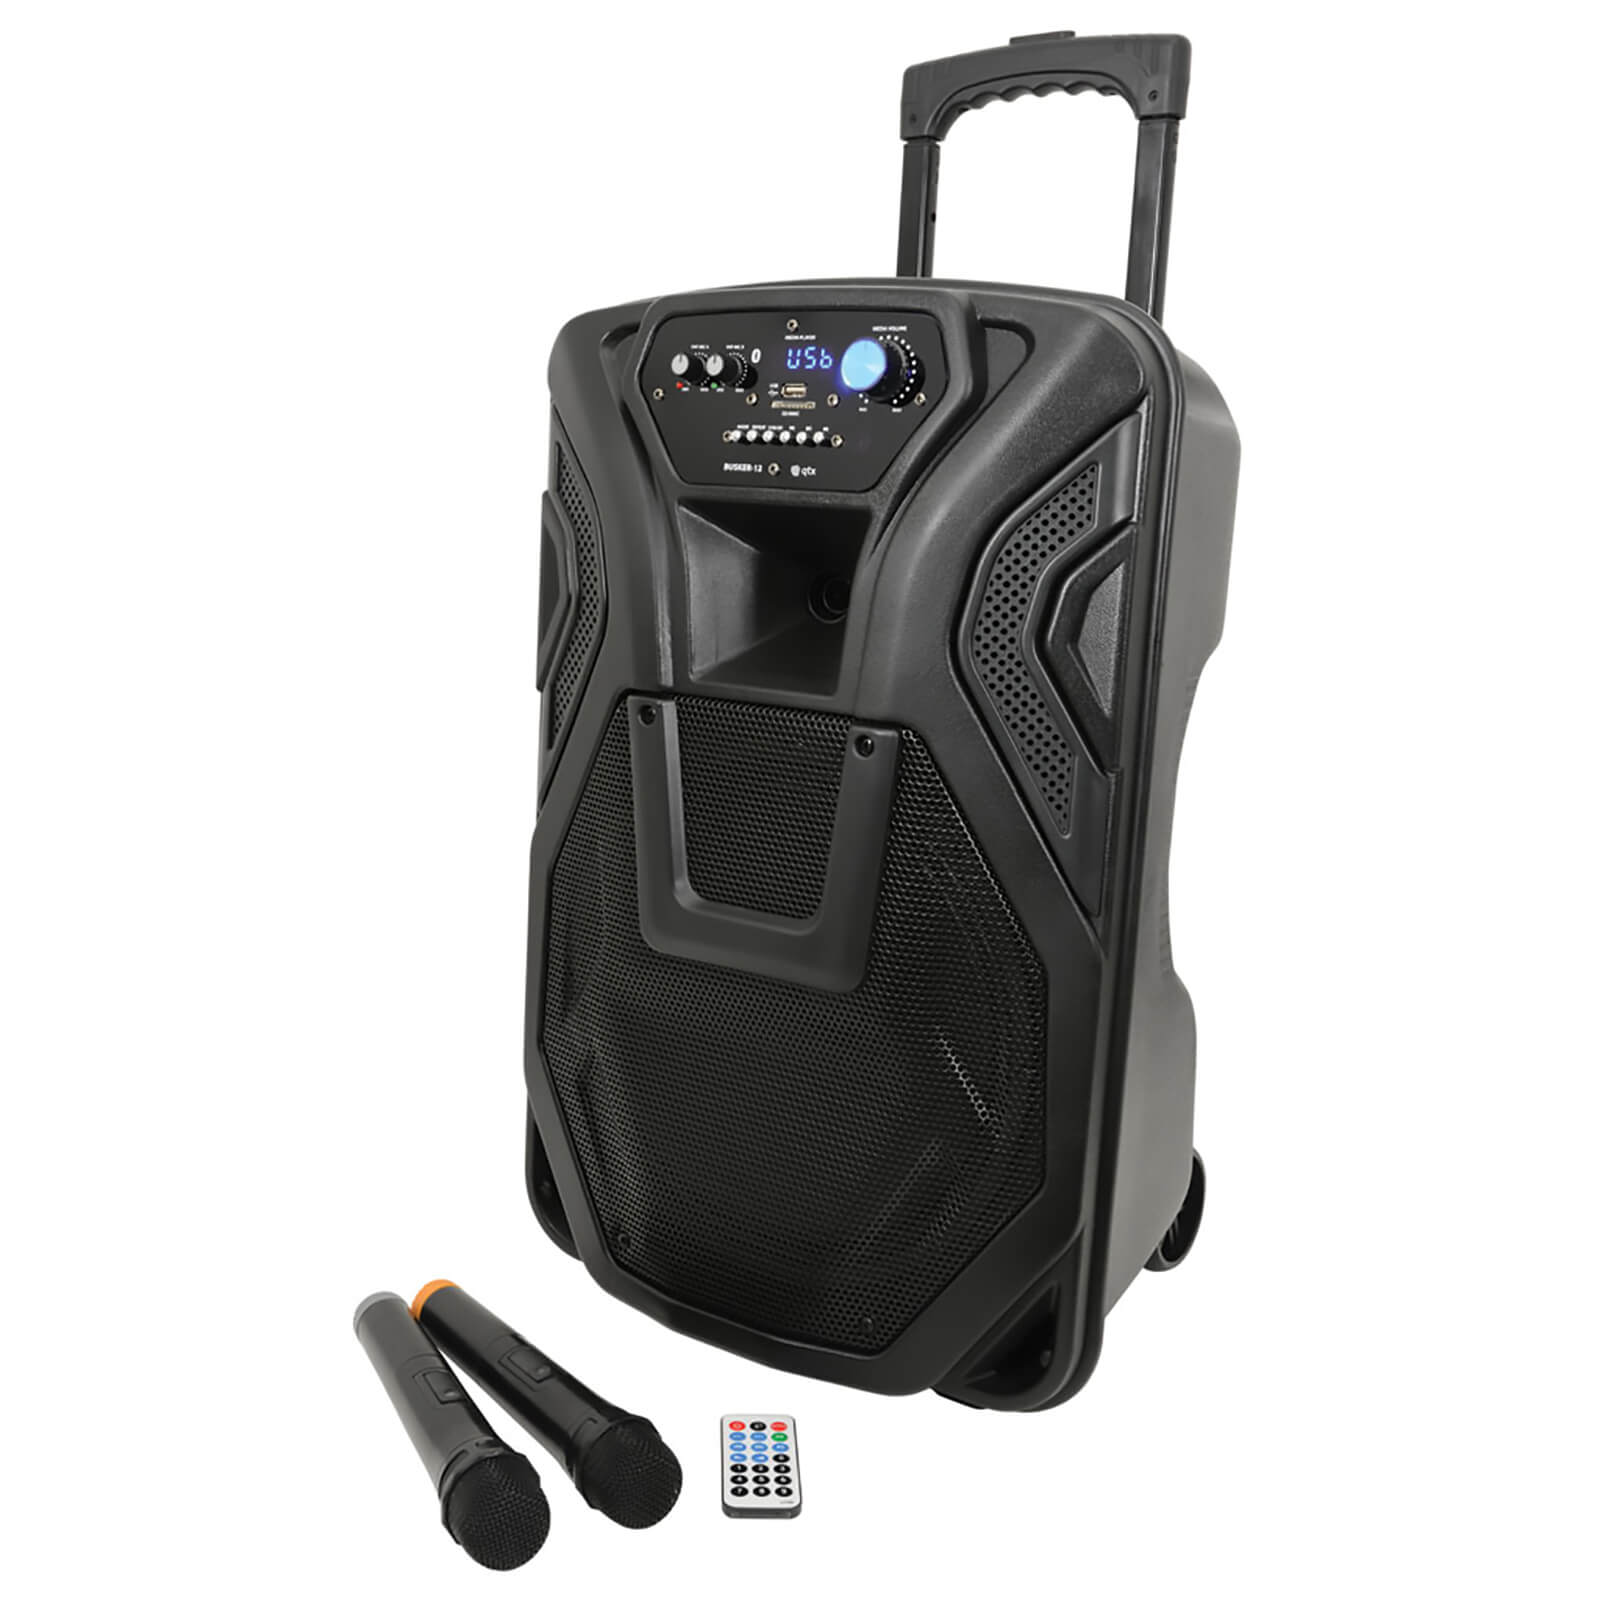 QTX Busker Bluetooth PA System with 2x VHF Mics and Built-in Trolley - Black (12 Inch Driver)